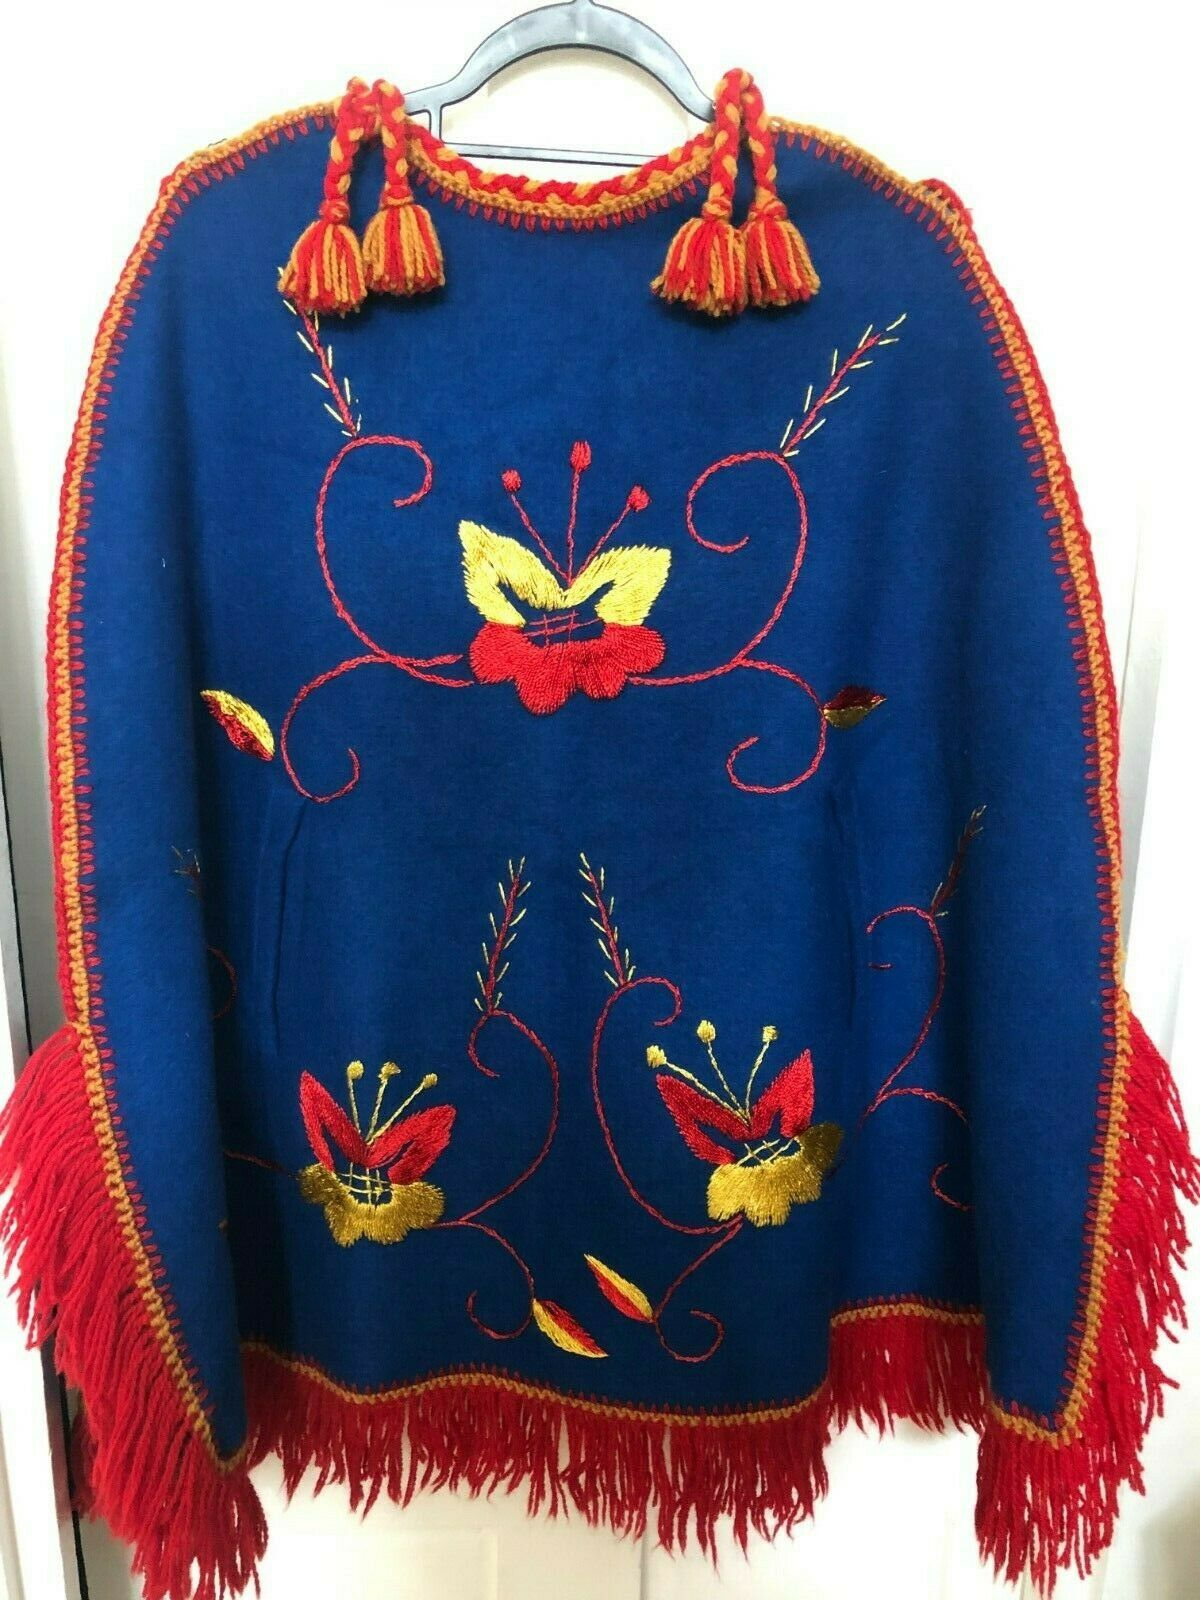 Amazing Vintage Mexican Poncho 1970s deadstock, embroidery, primary colours